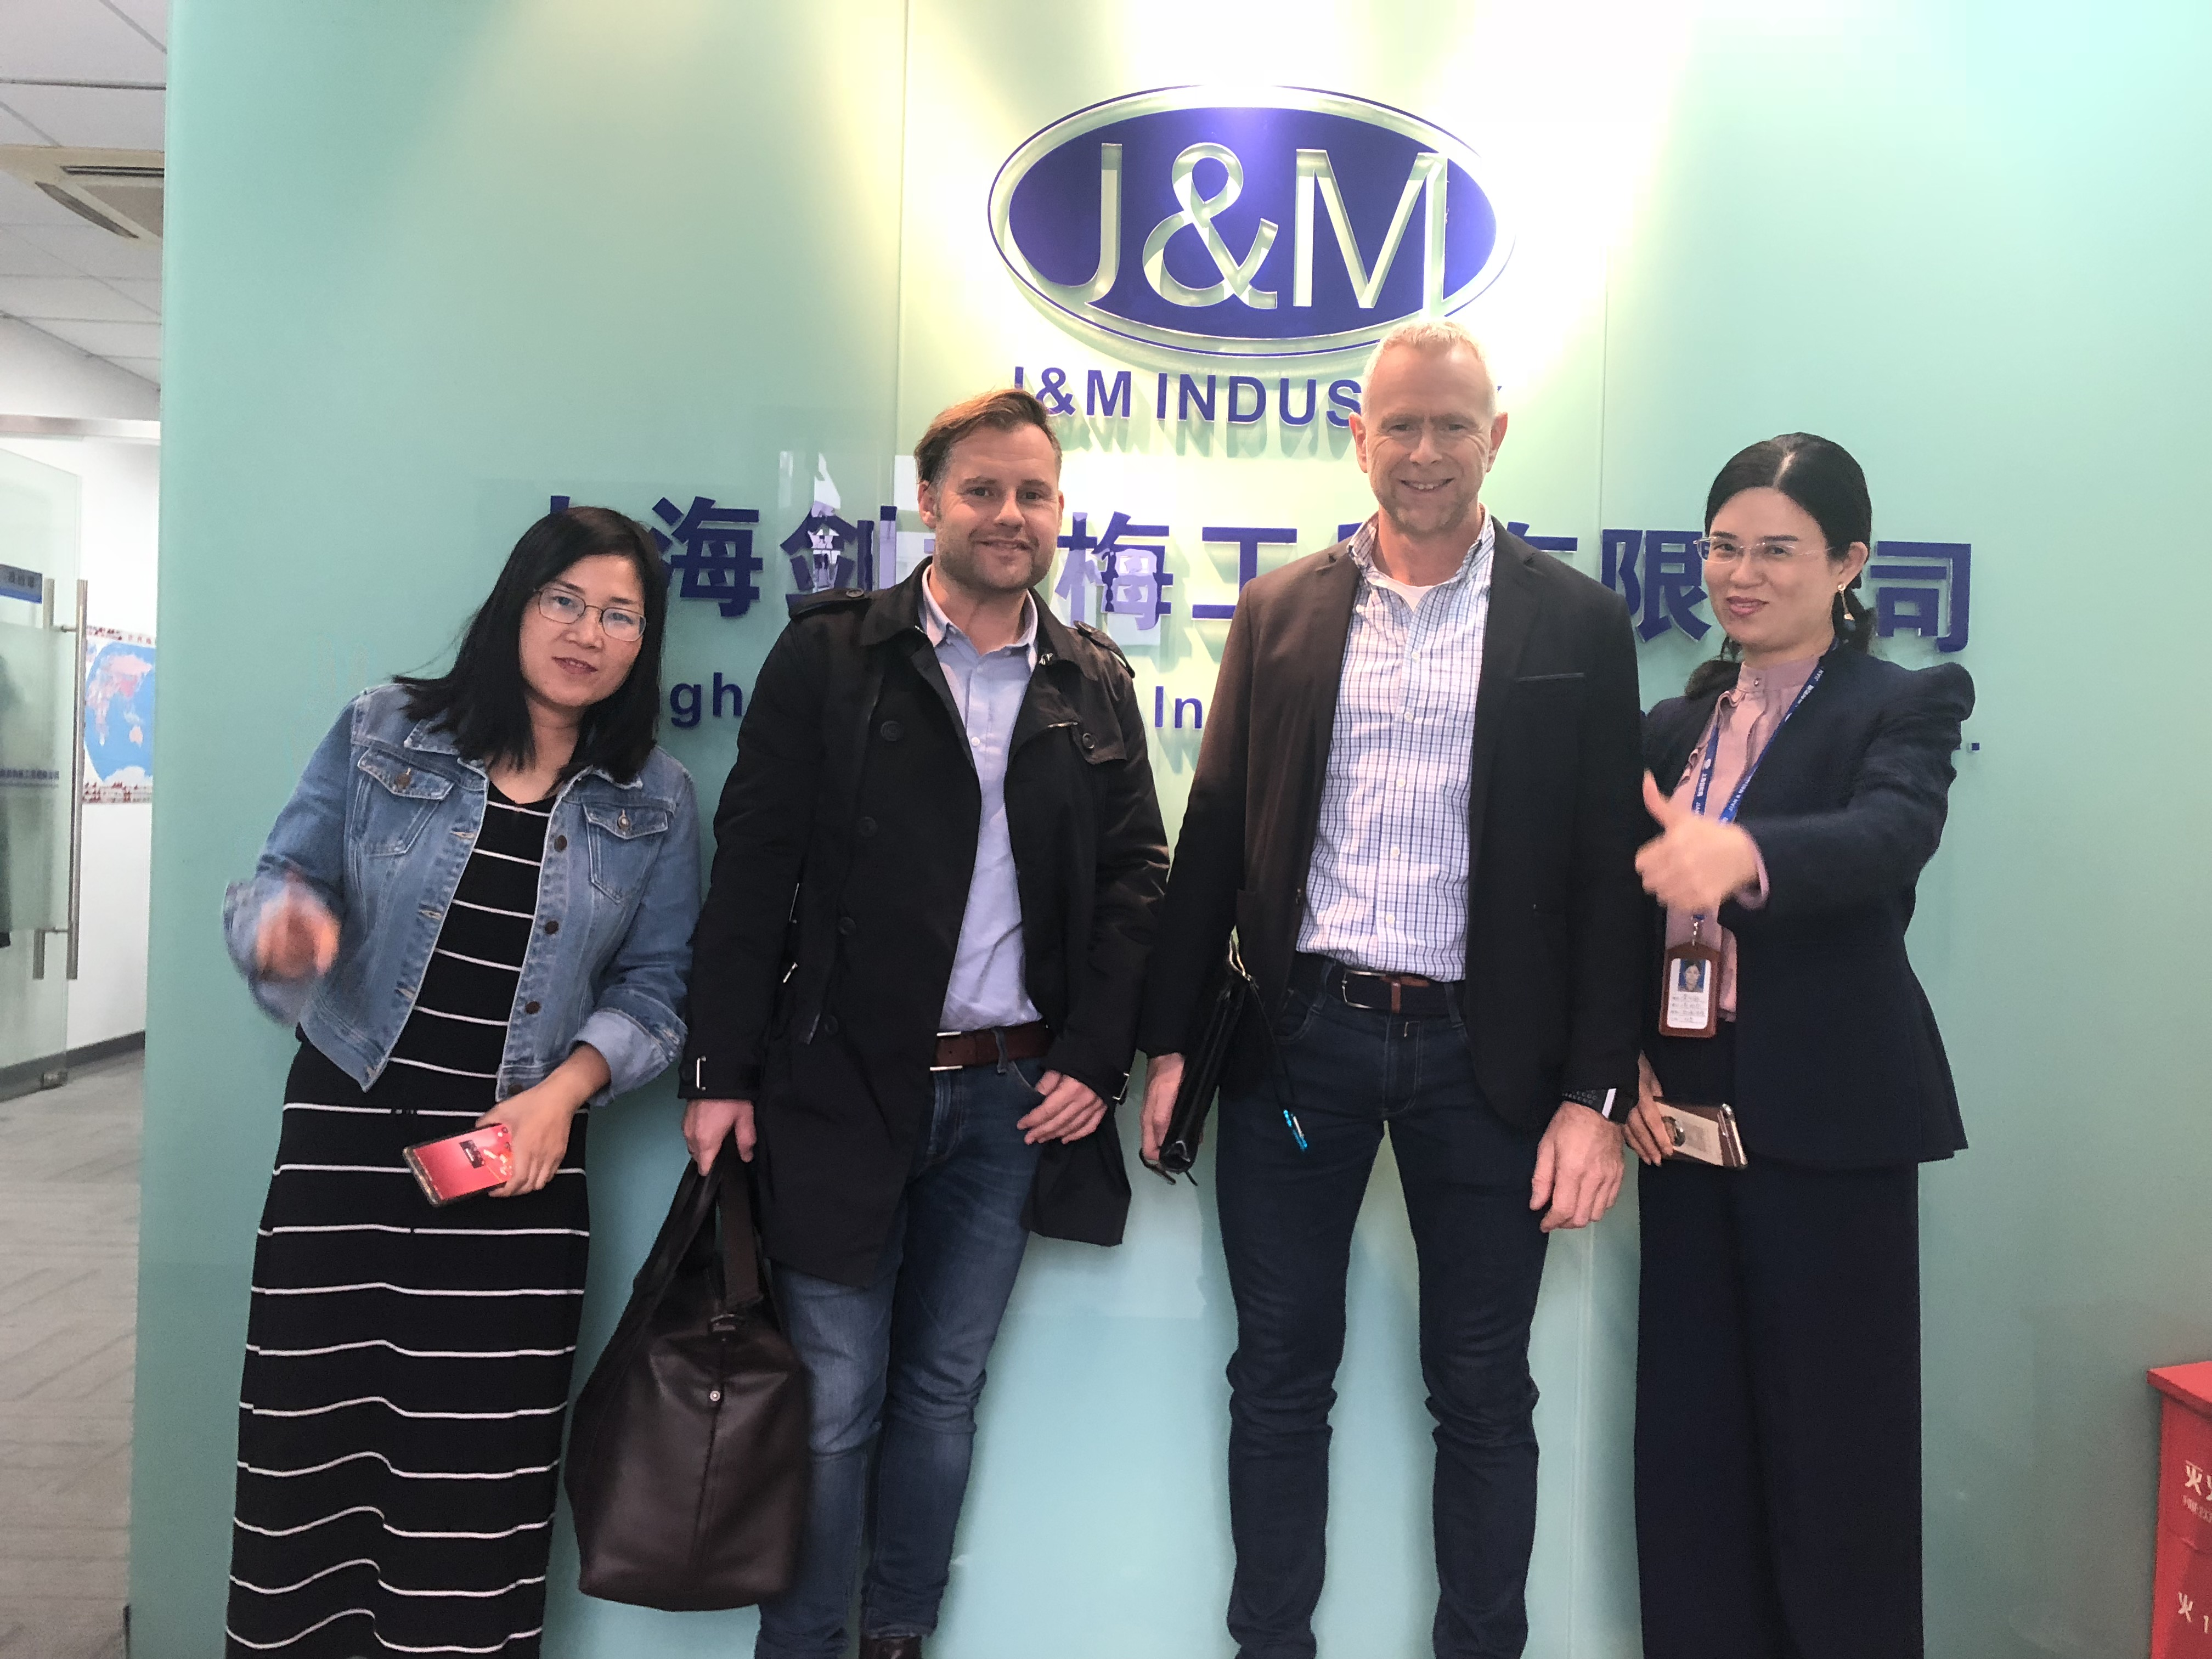 Nov.2nd 2018, our customers from Norway visit us